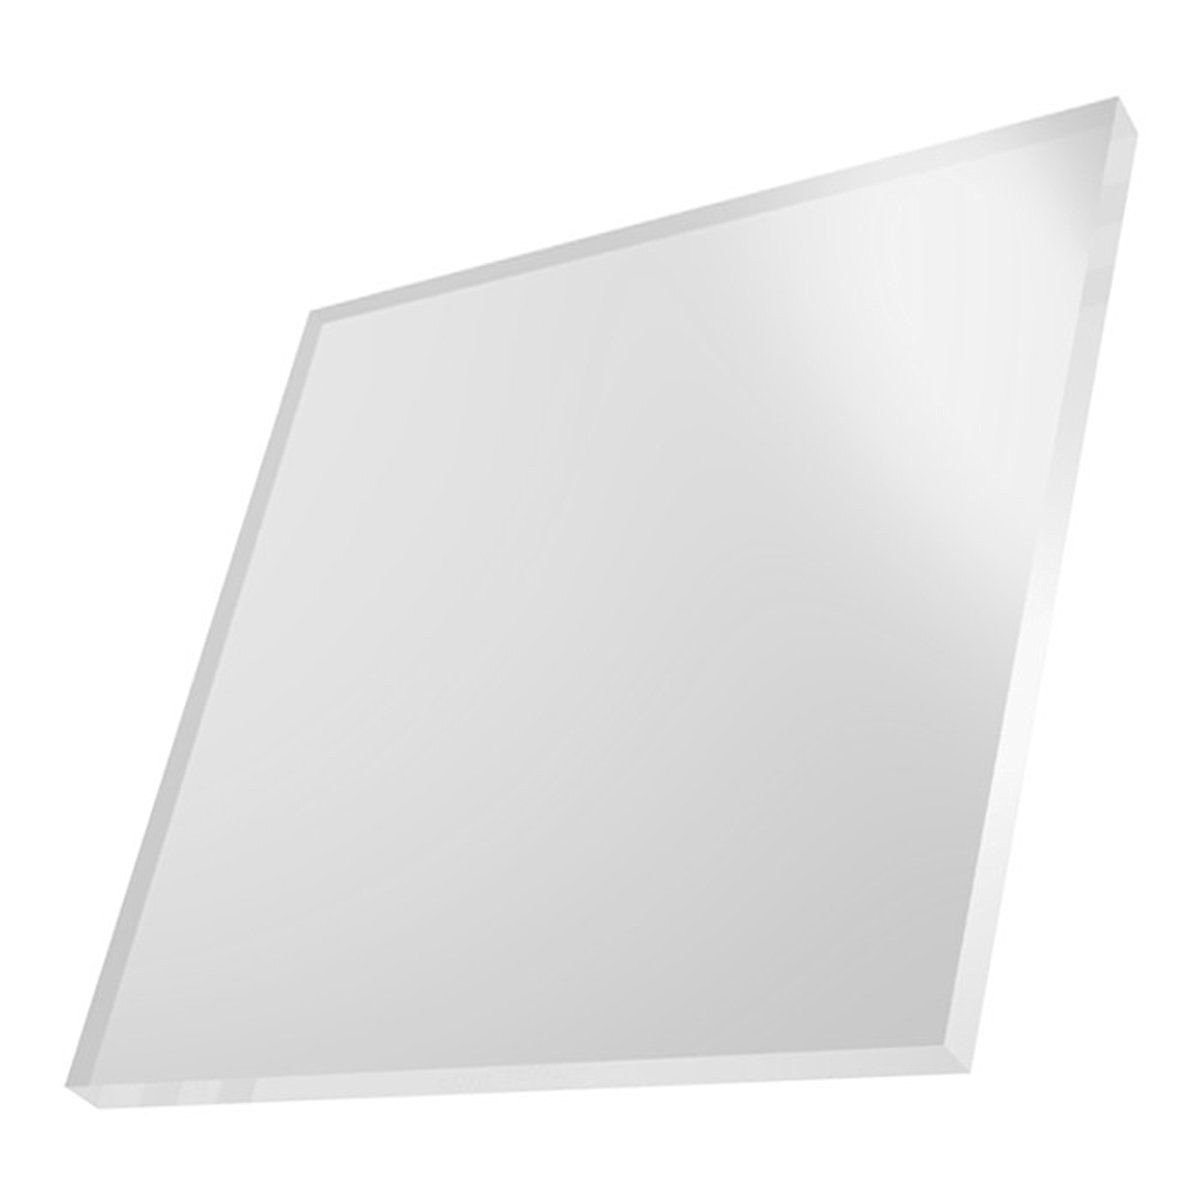 ACRYLIC PLASTIC SHEET USED IN GLASS CABINETS SHELVES SIGNBOARD 12X24 3MM WHITE